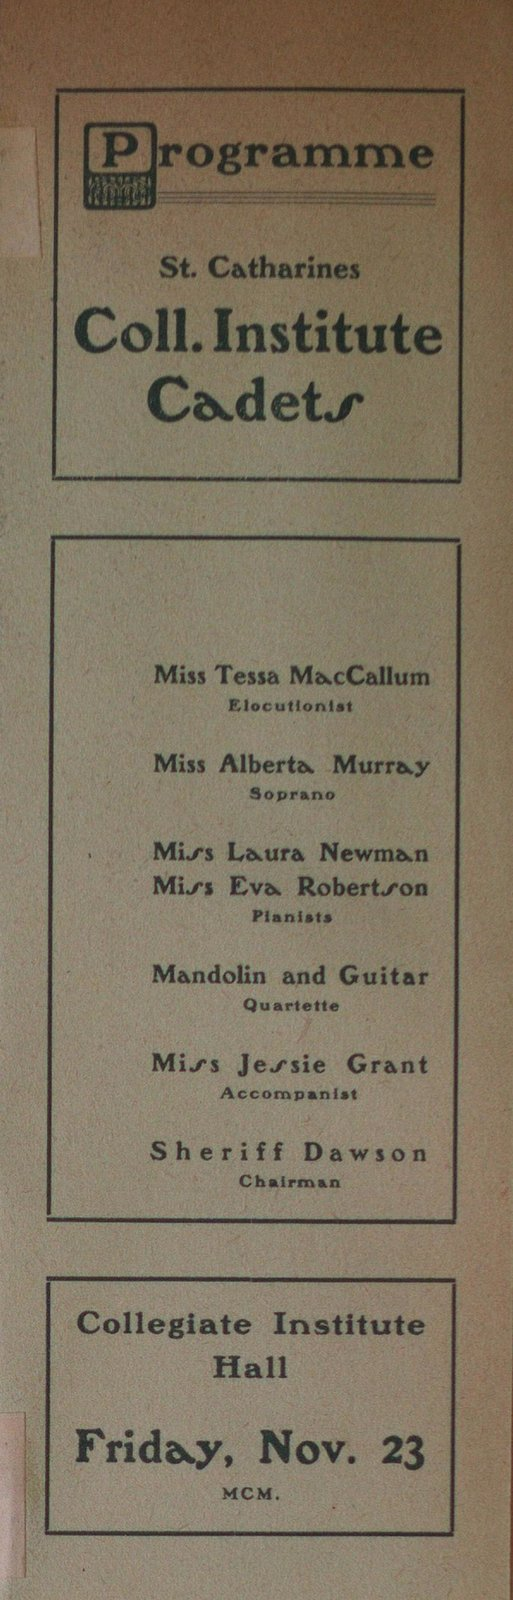 Teresa Vanderburgh's Musical Scrapbook #2 - St. Catharines Collegiate Institute Cadets